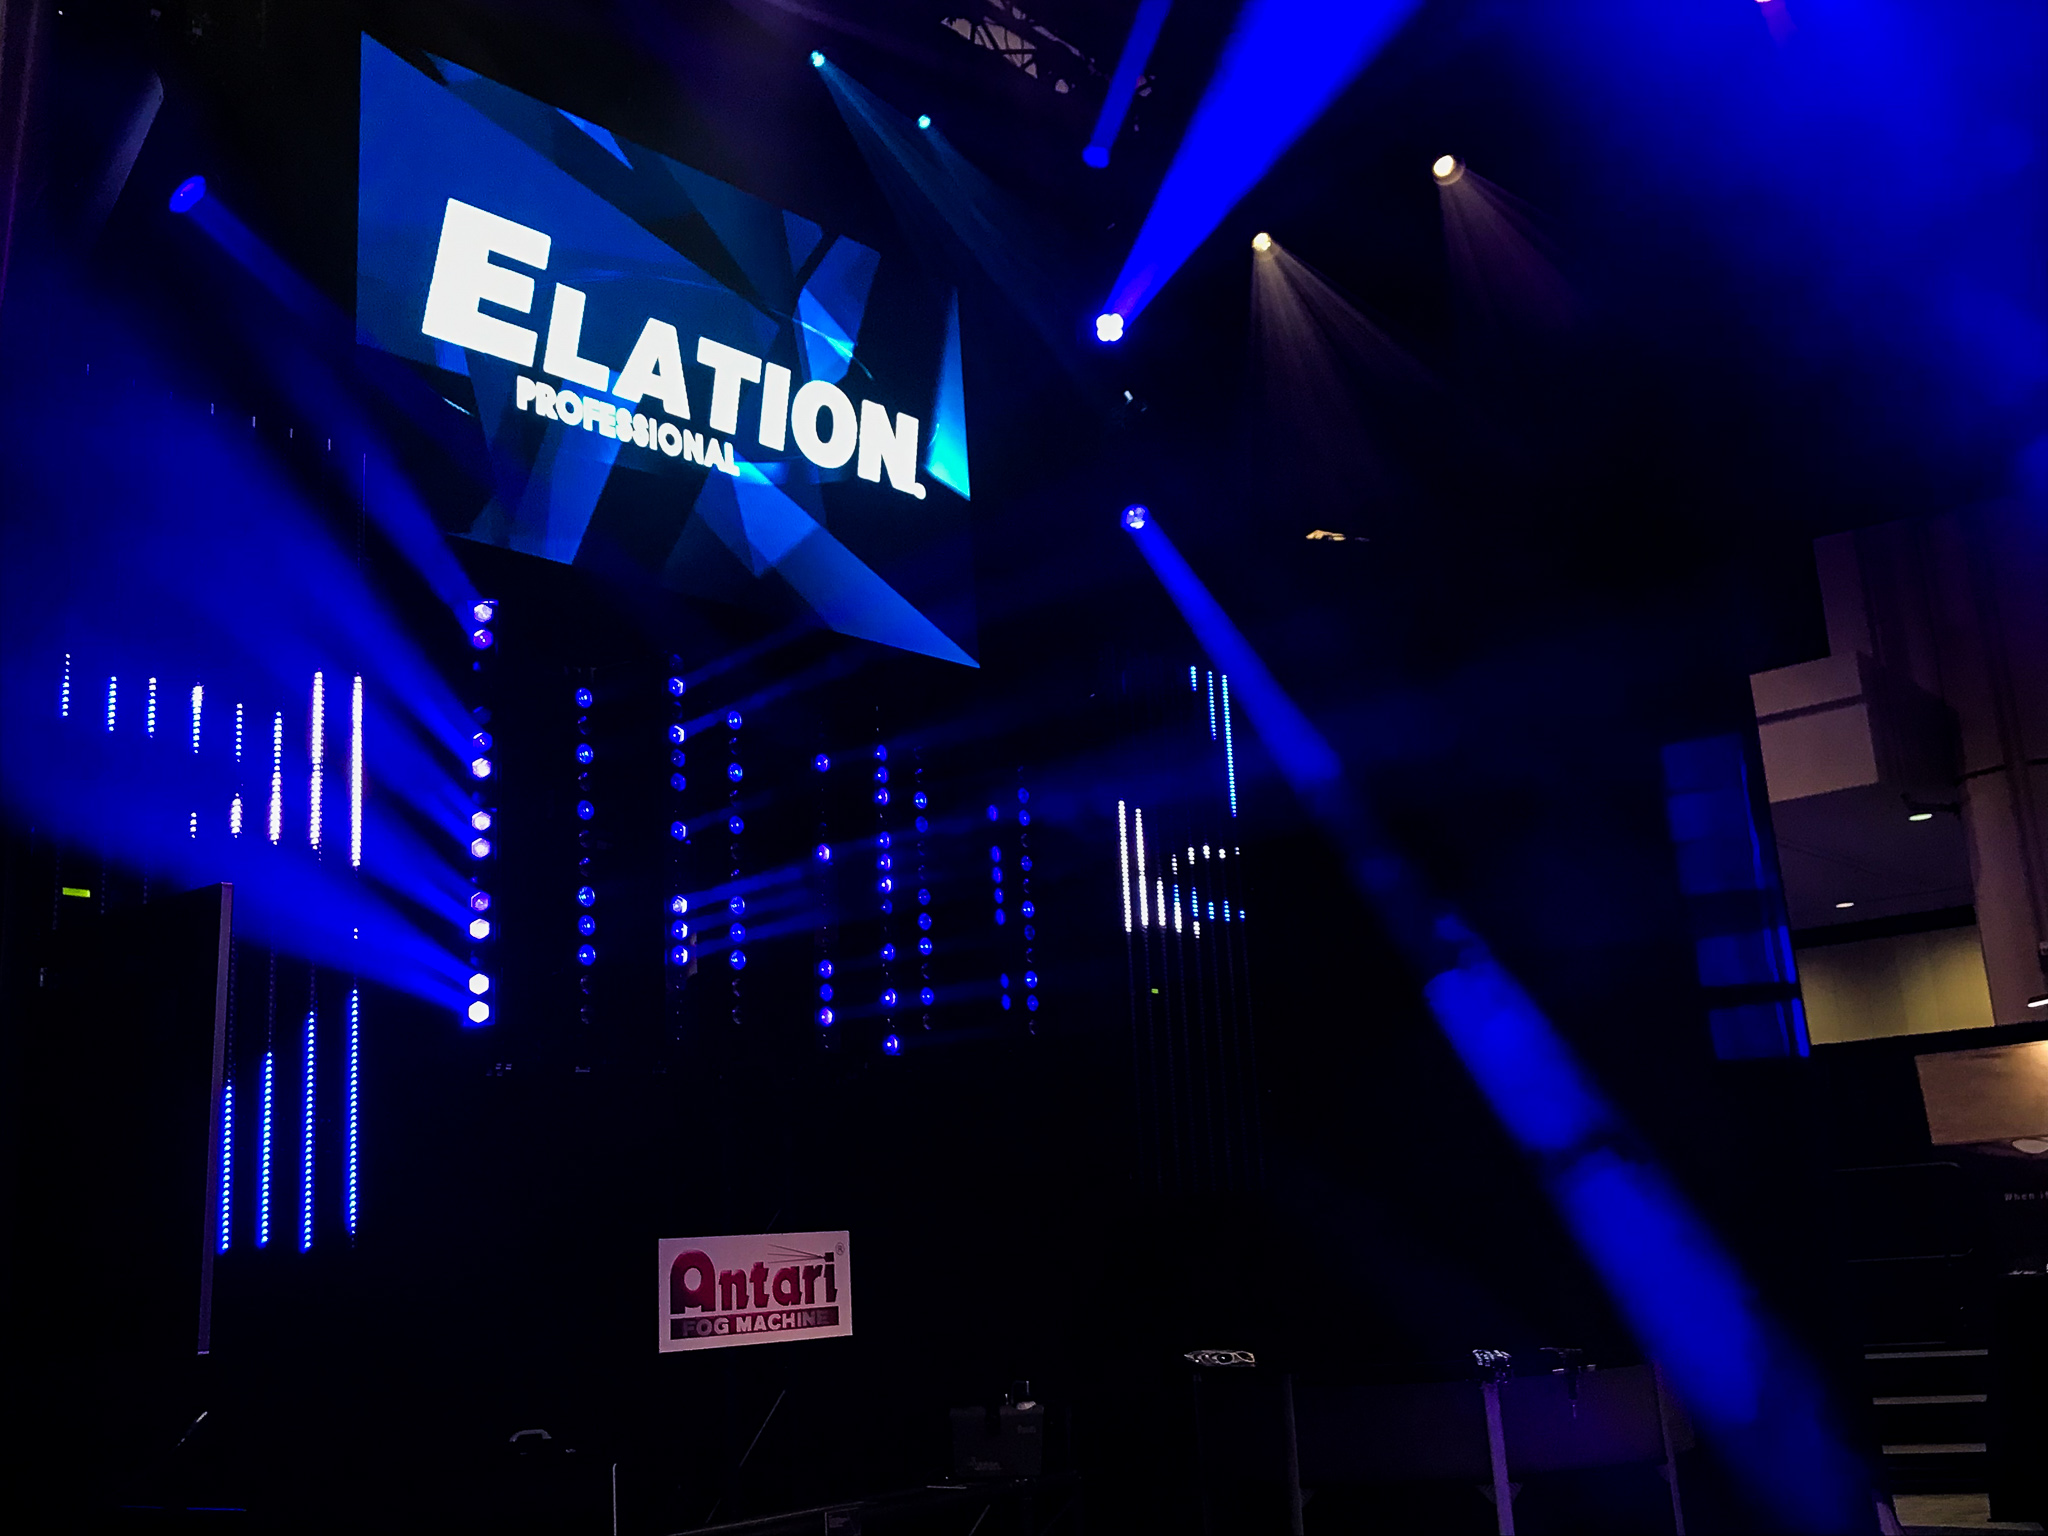 Elation Professional is a company that sells lighting equipment to enhance any worship service.